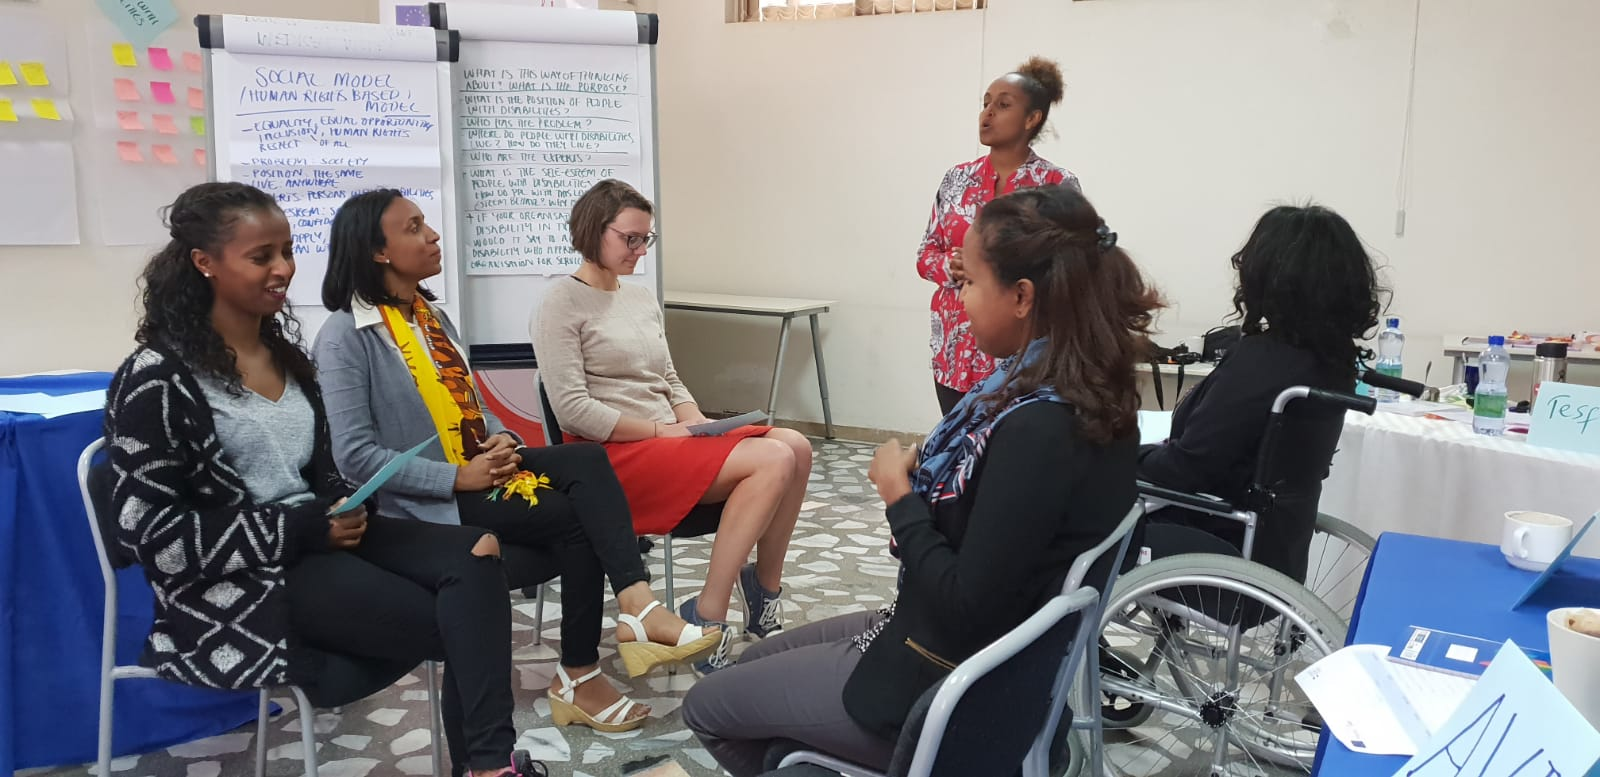 A moment of the Disability Equality Training organised by Bridging the Gap in Addis Ababa for DfID staff.